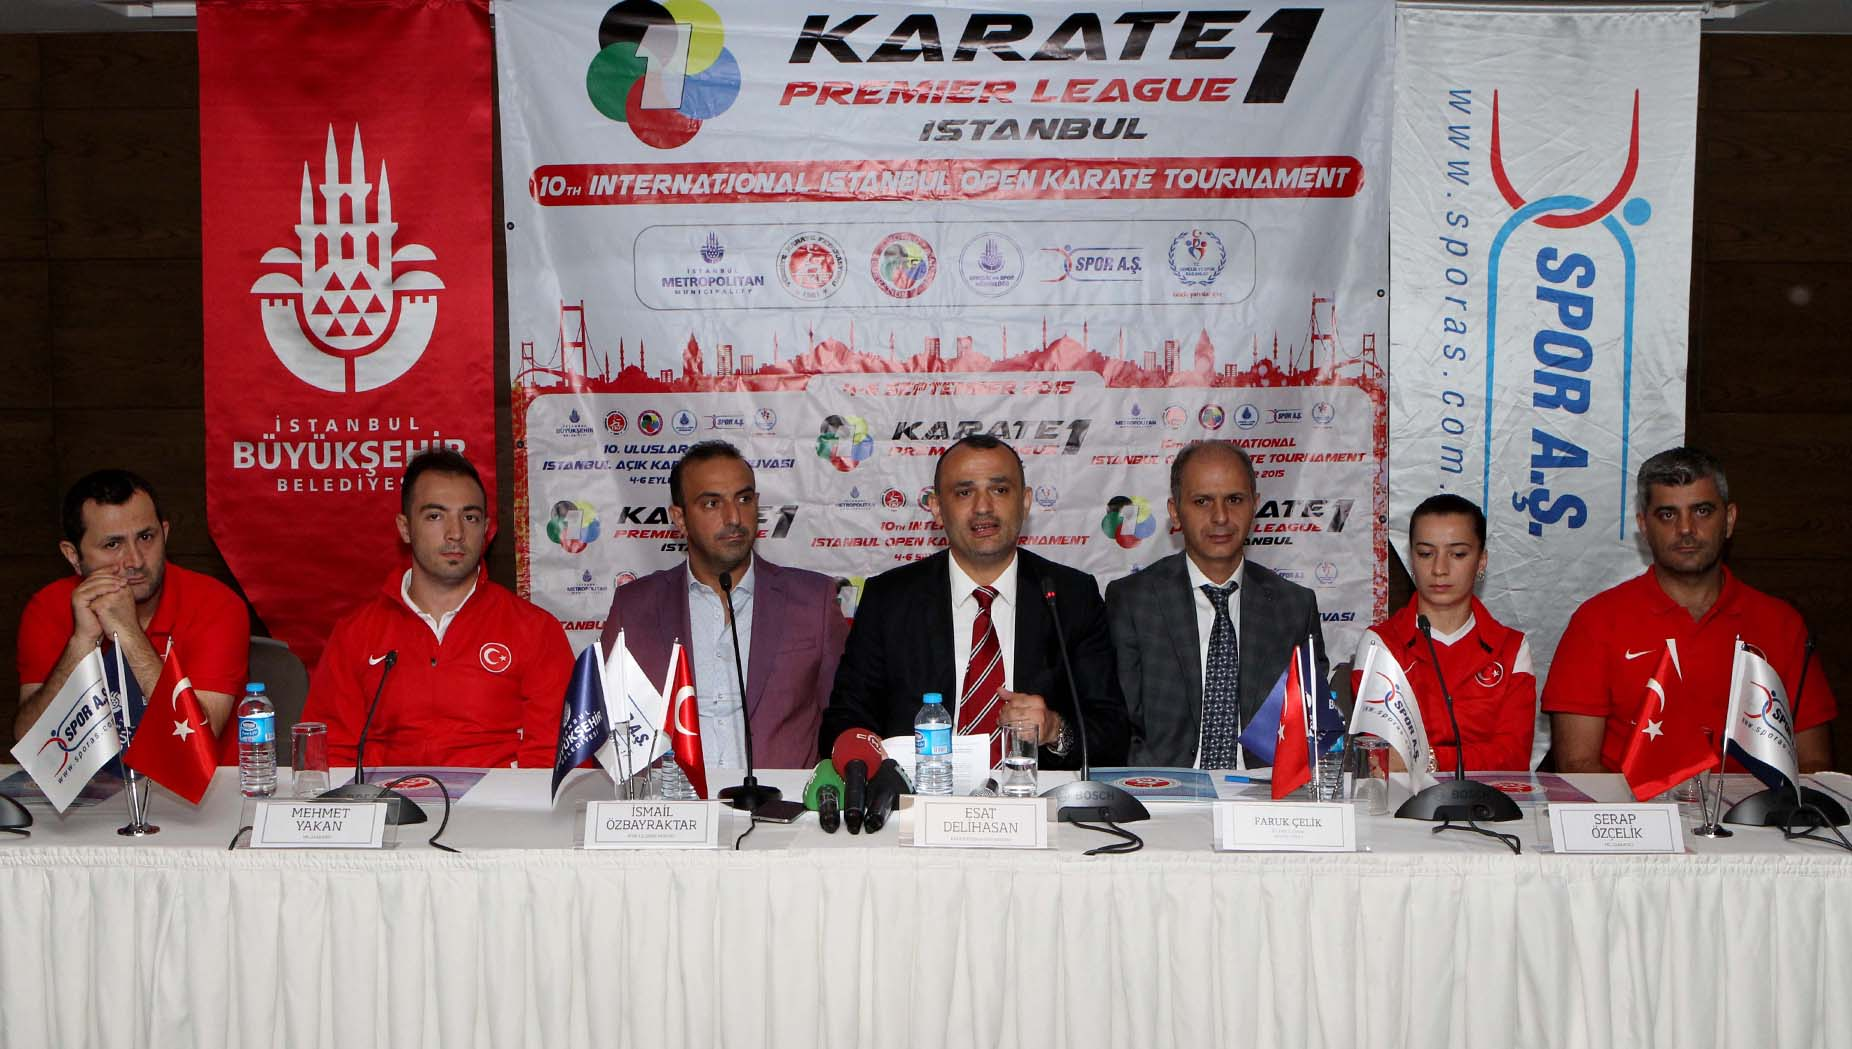 KARATE 1 PREMIER LEAGUE BASIN TOPLANTISI YAPILDI